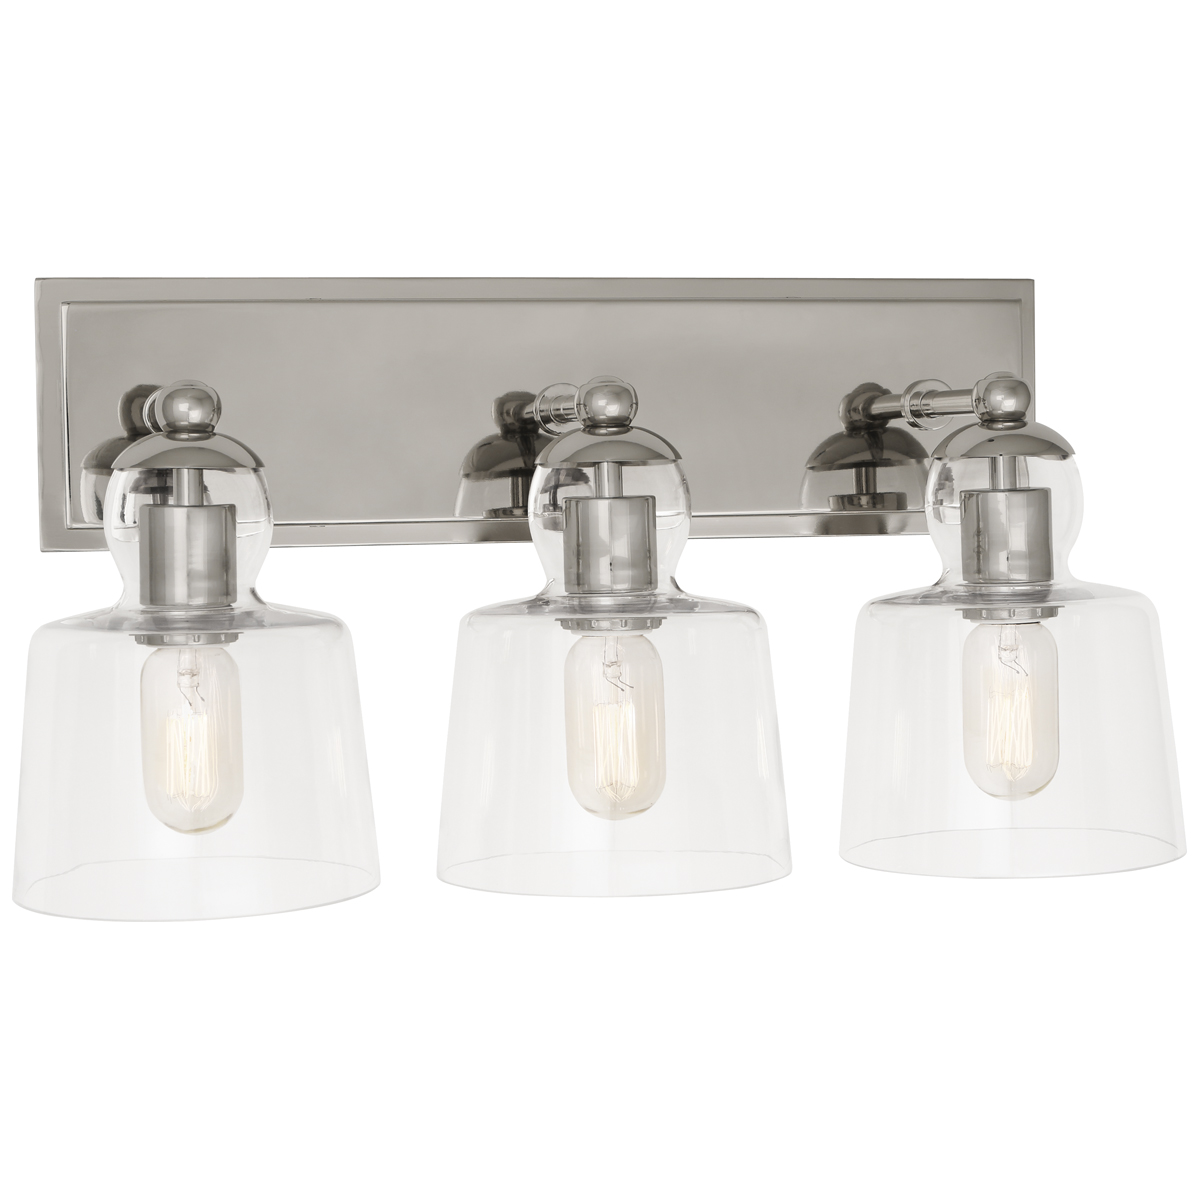 Albert Wall Sconce Style #S744